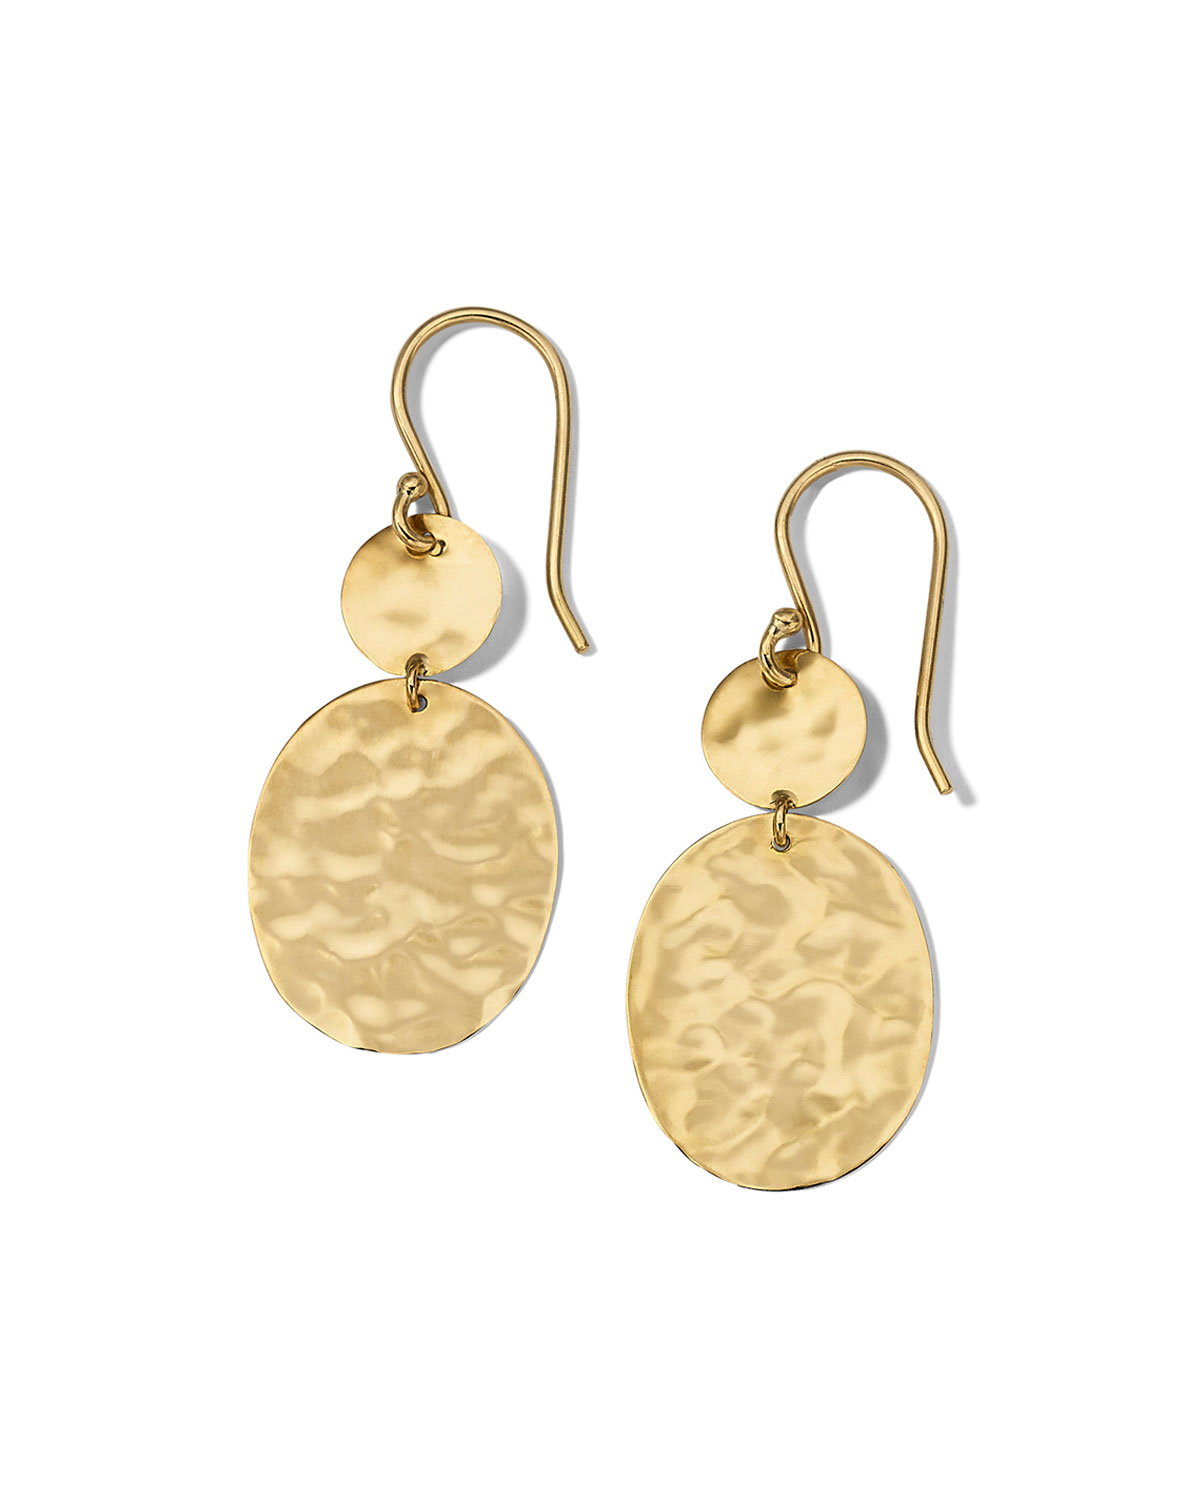 Classico Crinkle Hammered Circle Oval Drop Earrings in 18K Gold